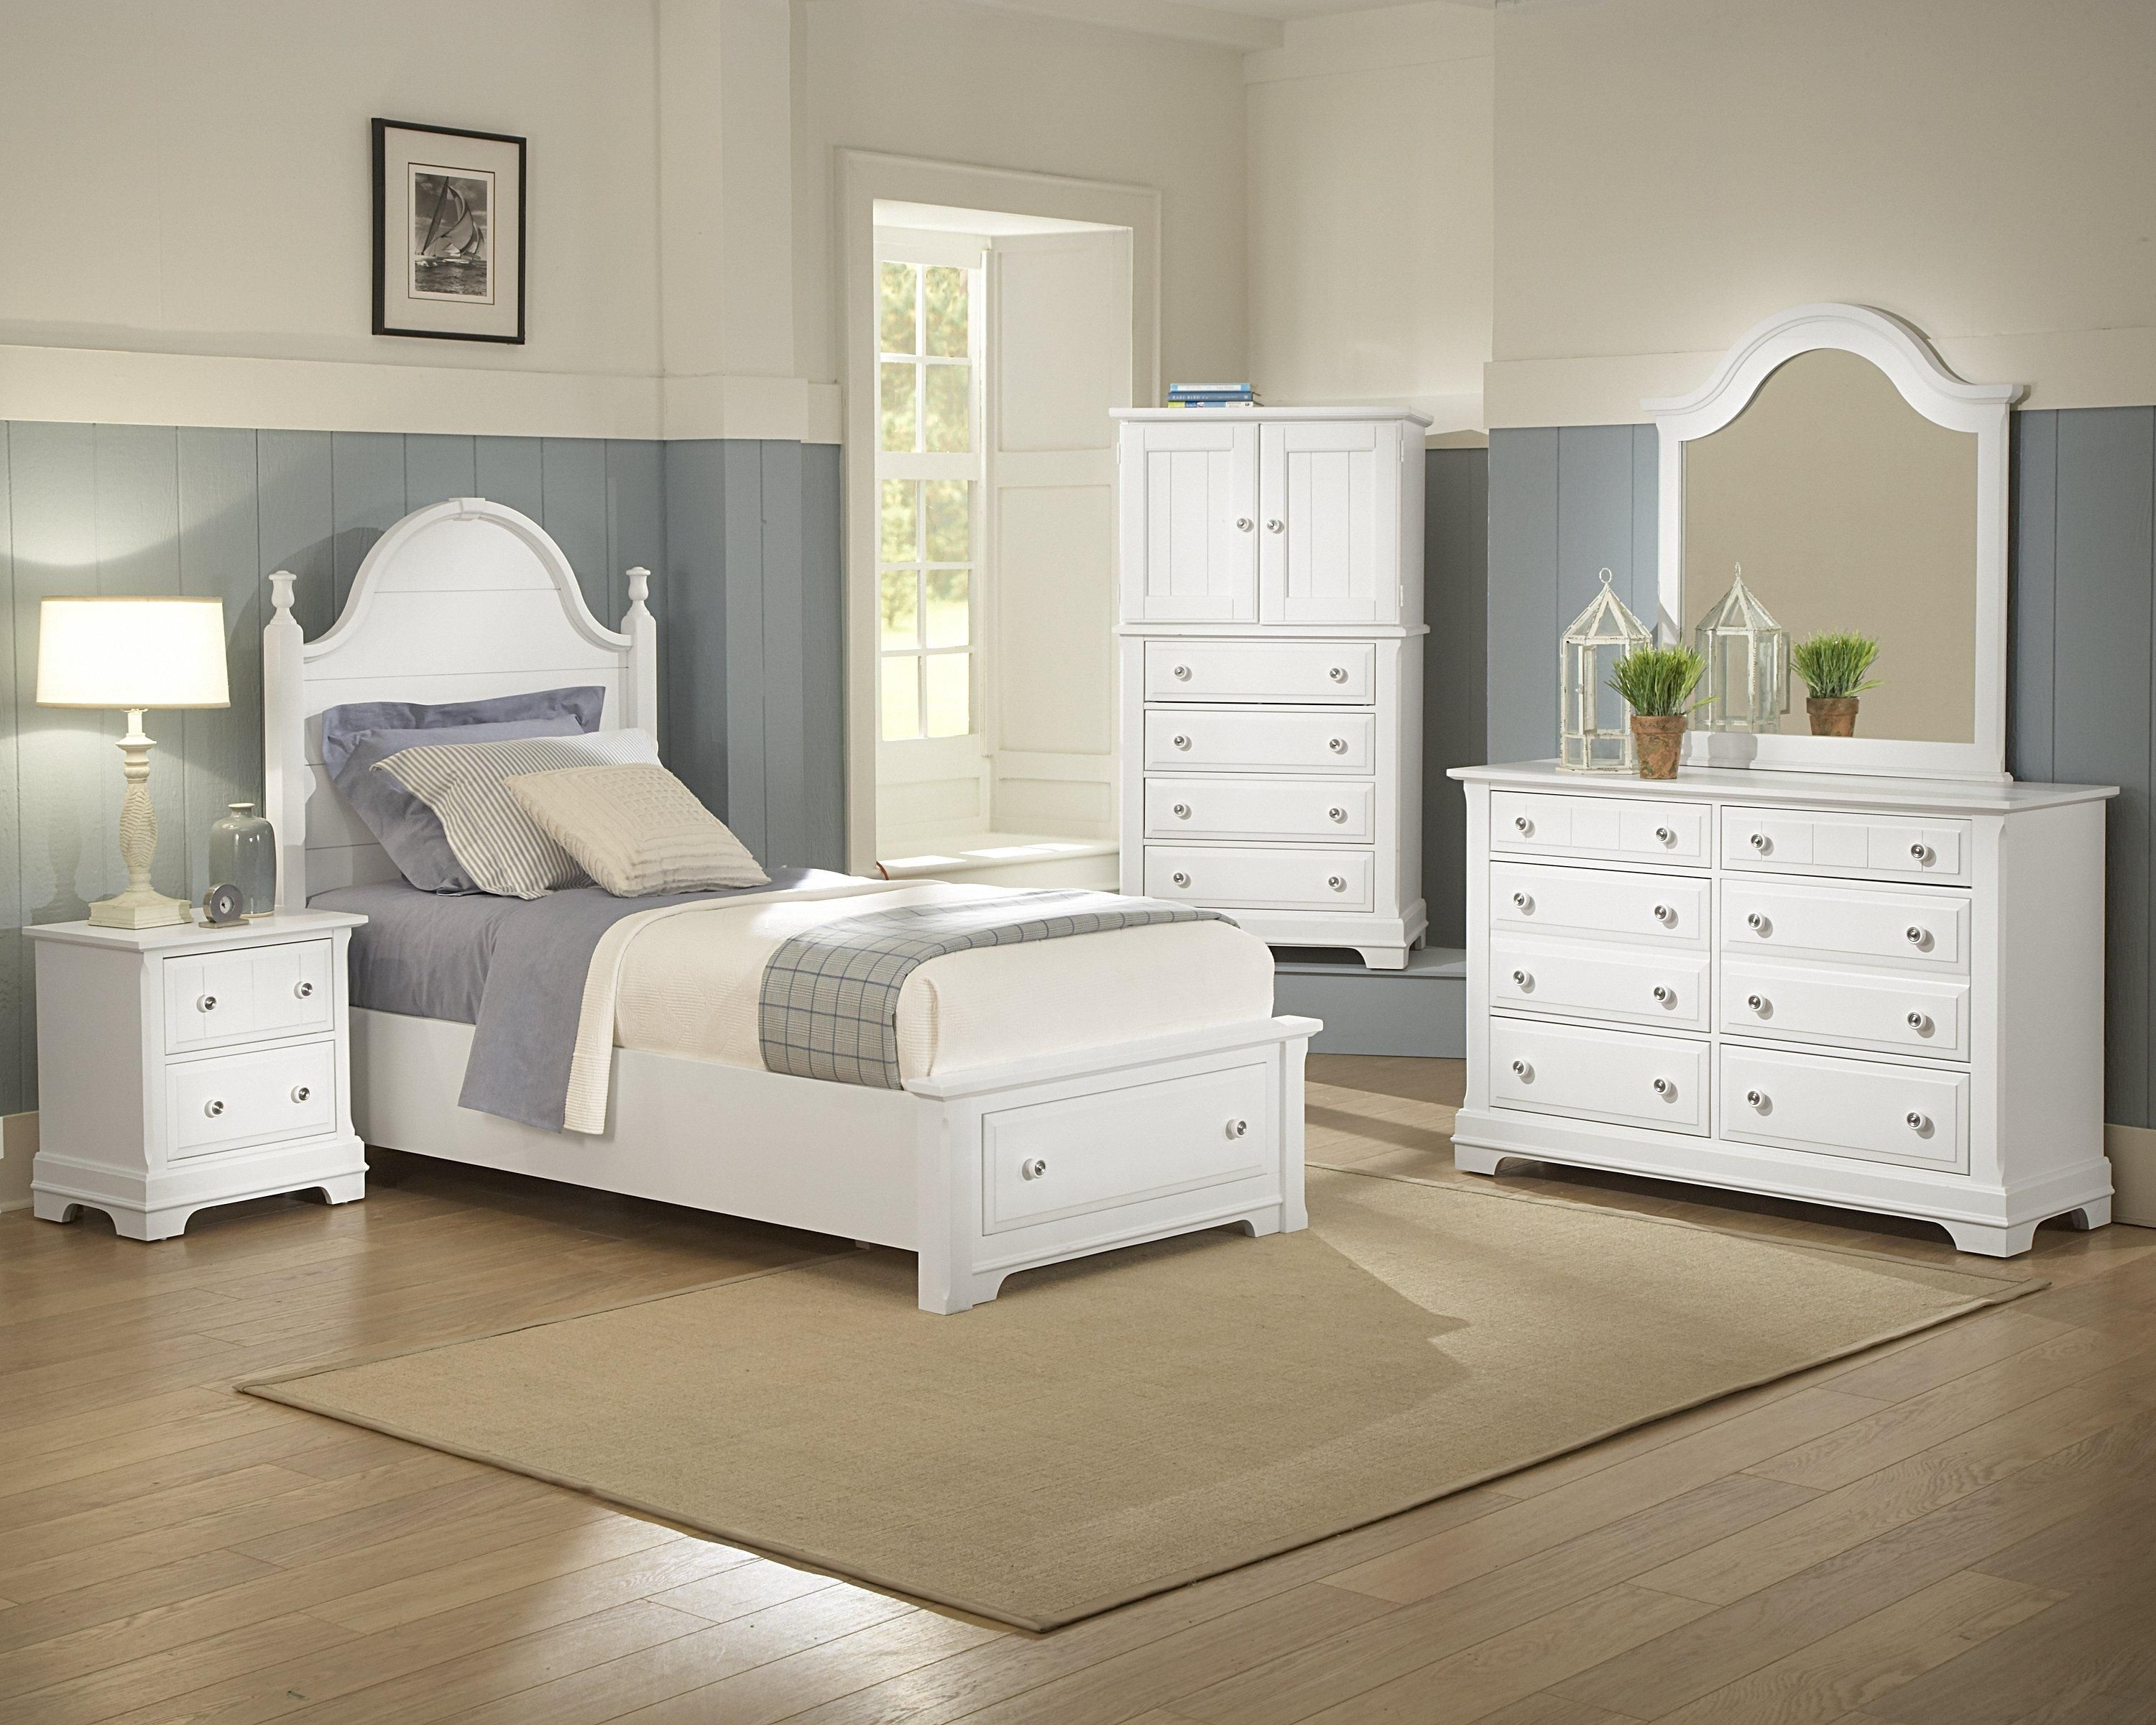 Vaughn bassett furniture cottage collection featuring for Bassett bedroom furniture